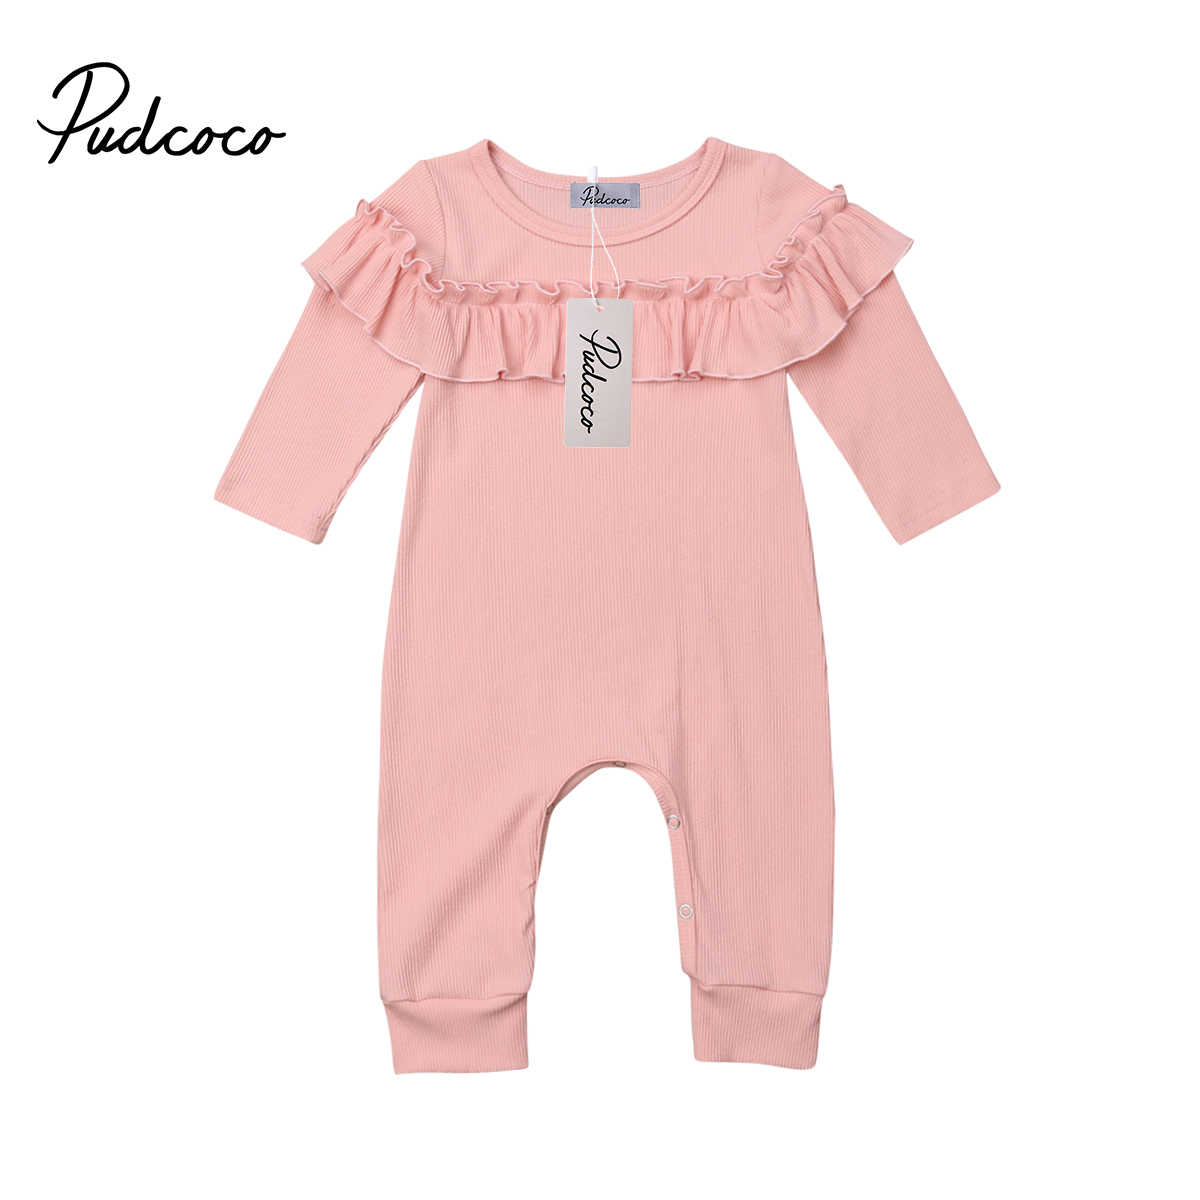 Pudcoco Cute Newborn Infant Baby Girls Cotton Ruffle   Romper   Jumpsuit Long Sleeve Princess Kids Outfits Clothes